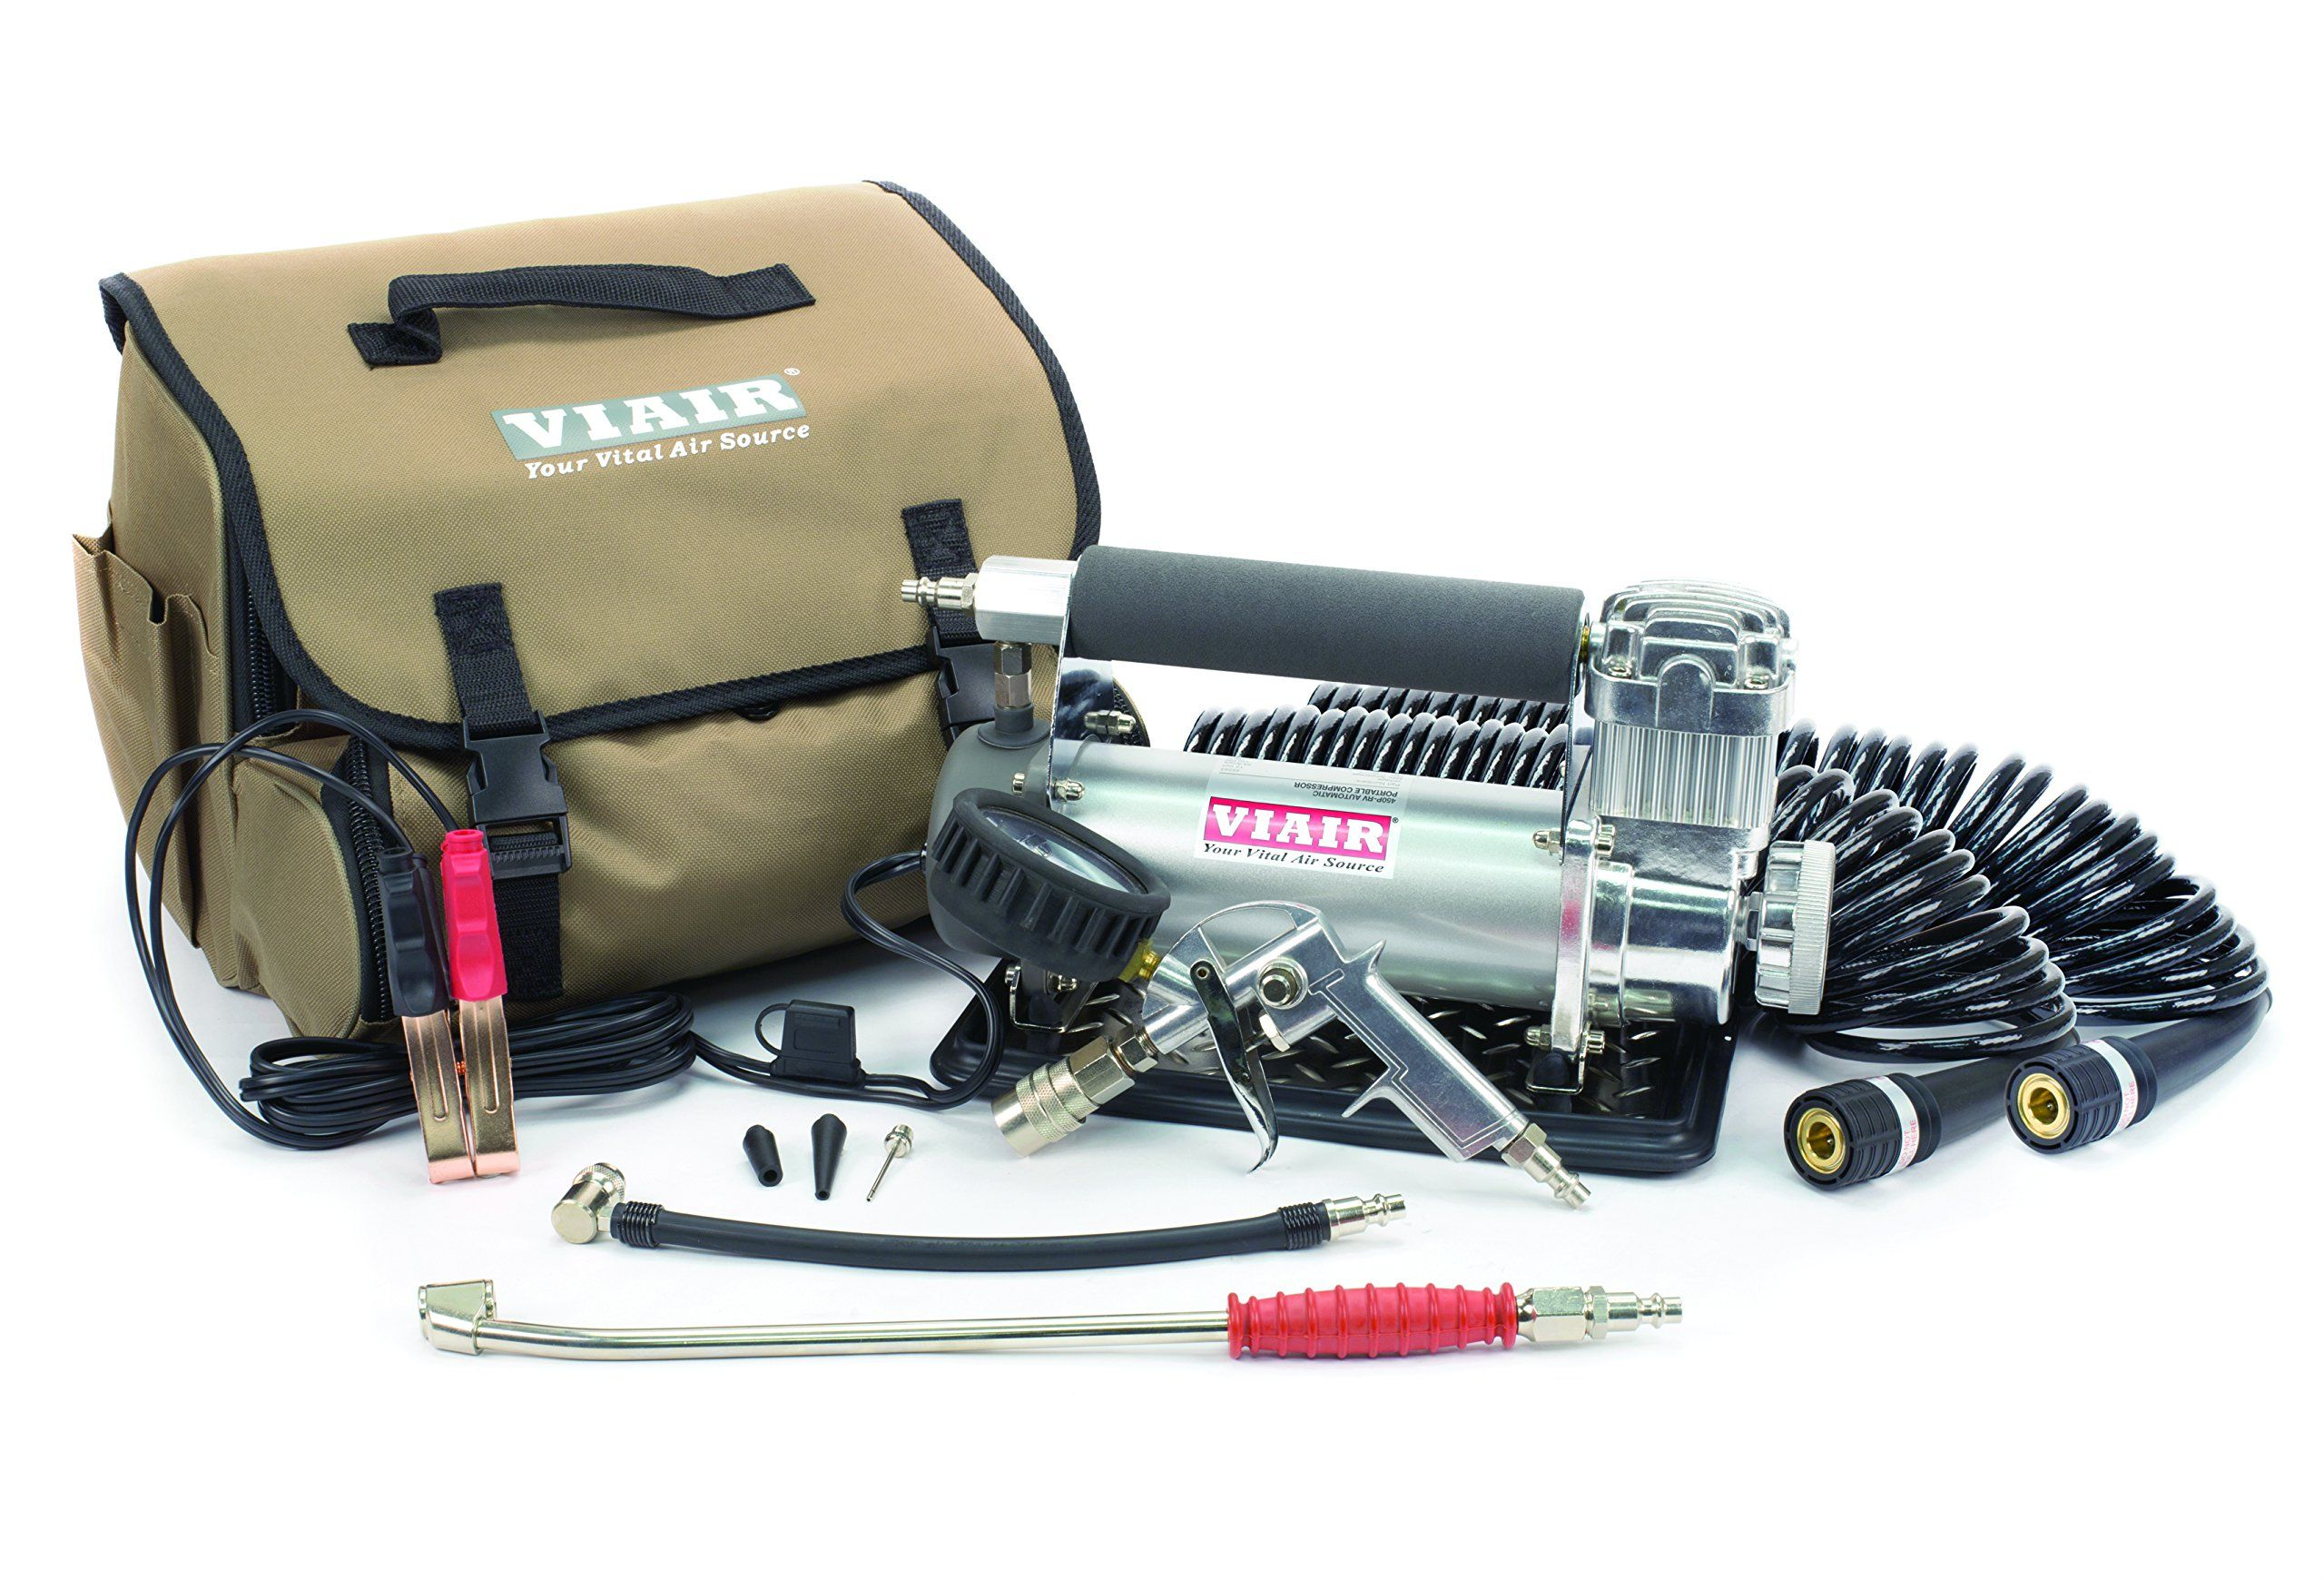 VIAIR 45053 Silver Automatic Portable Compressor Kit